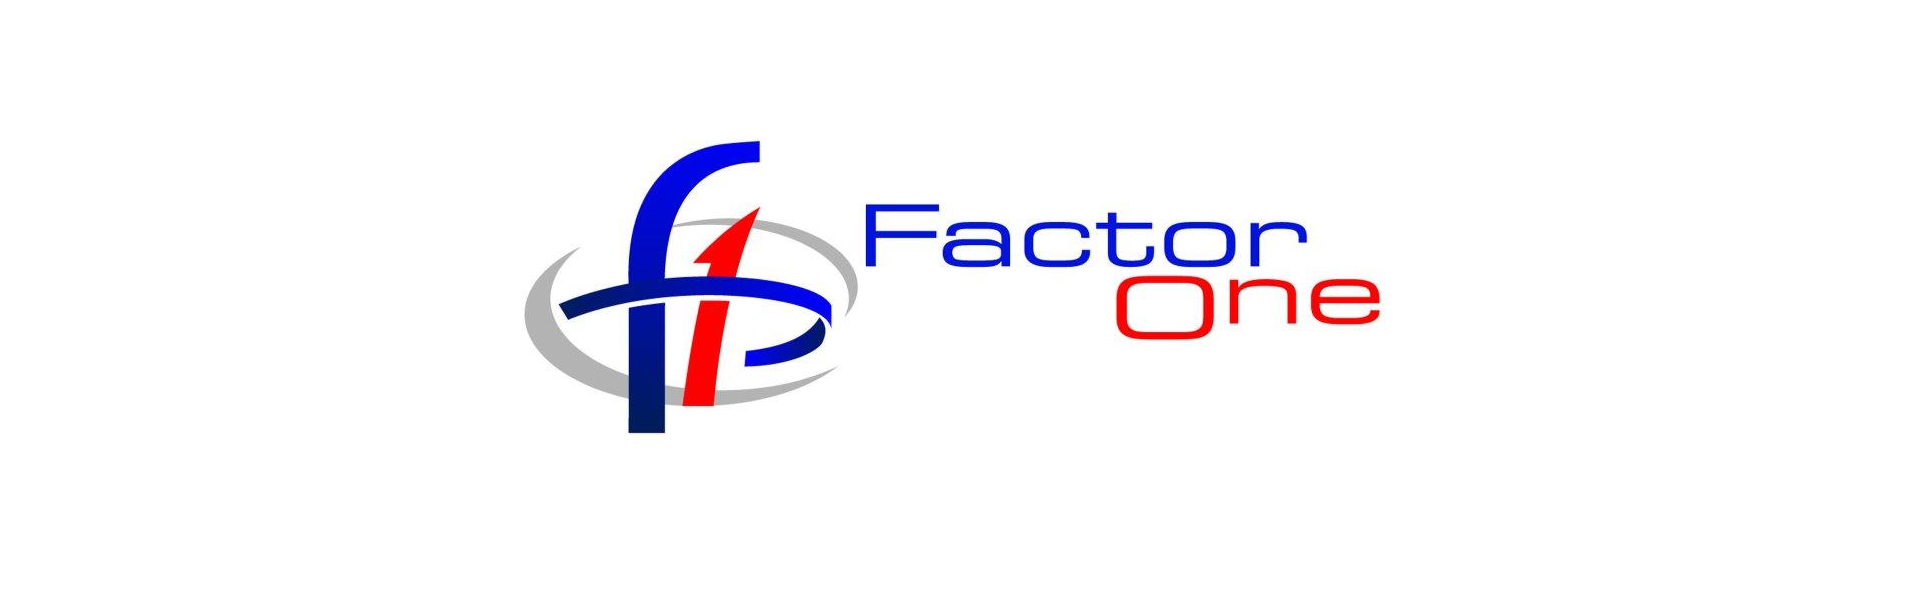 Factor One Technology Inc.